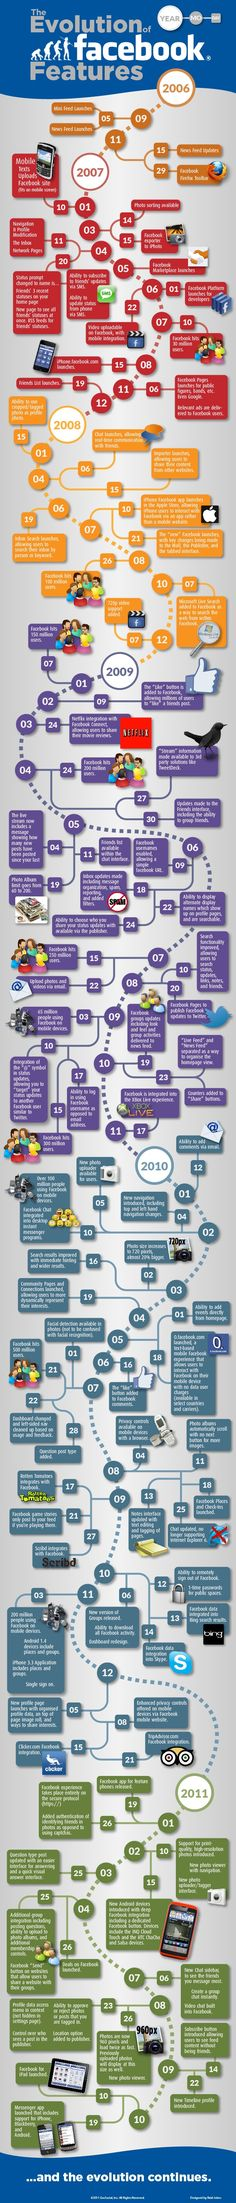 Facebook announces it's IPO resulting in all sorts of info being thrown at us, I thought I would throw a bit more!